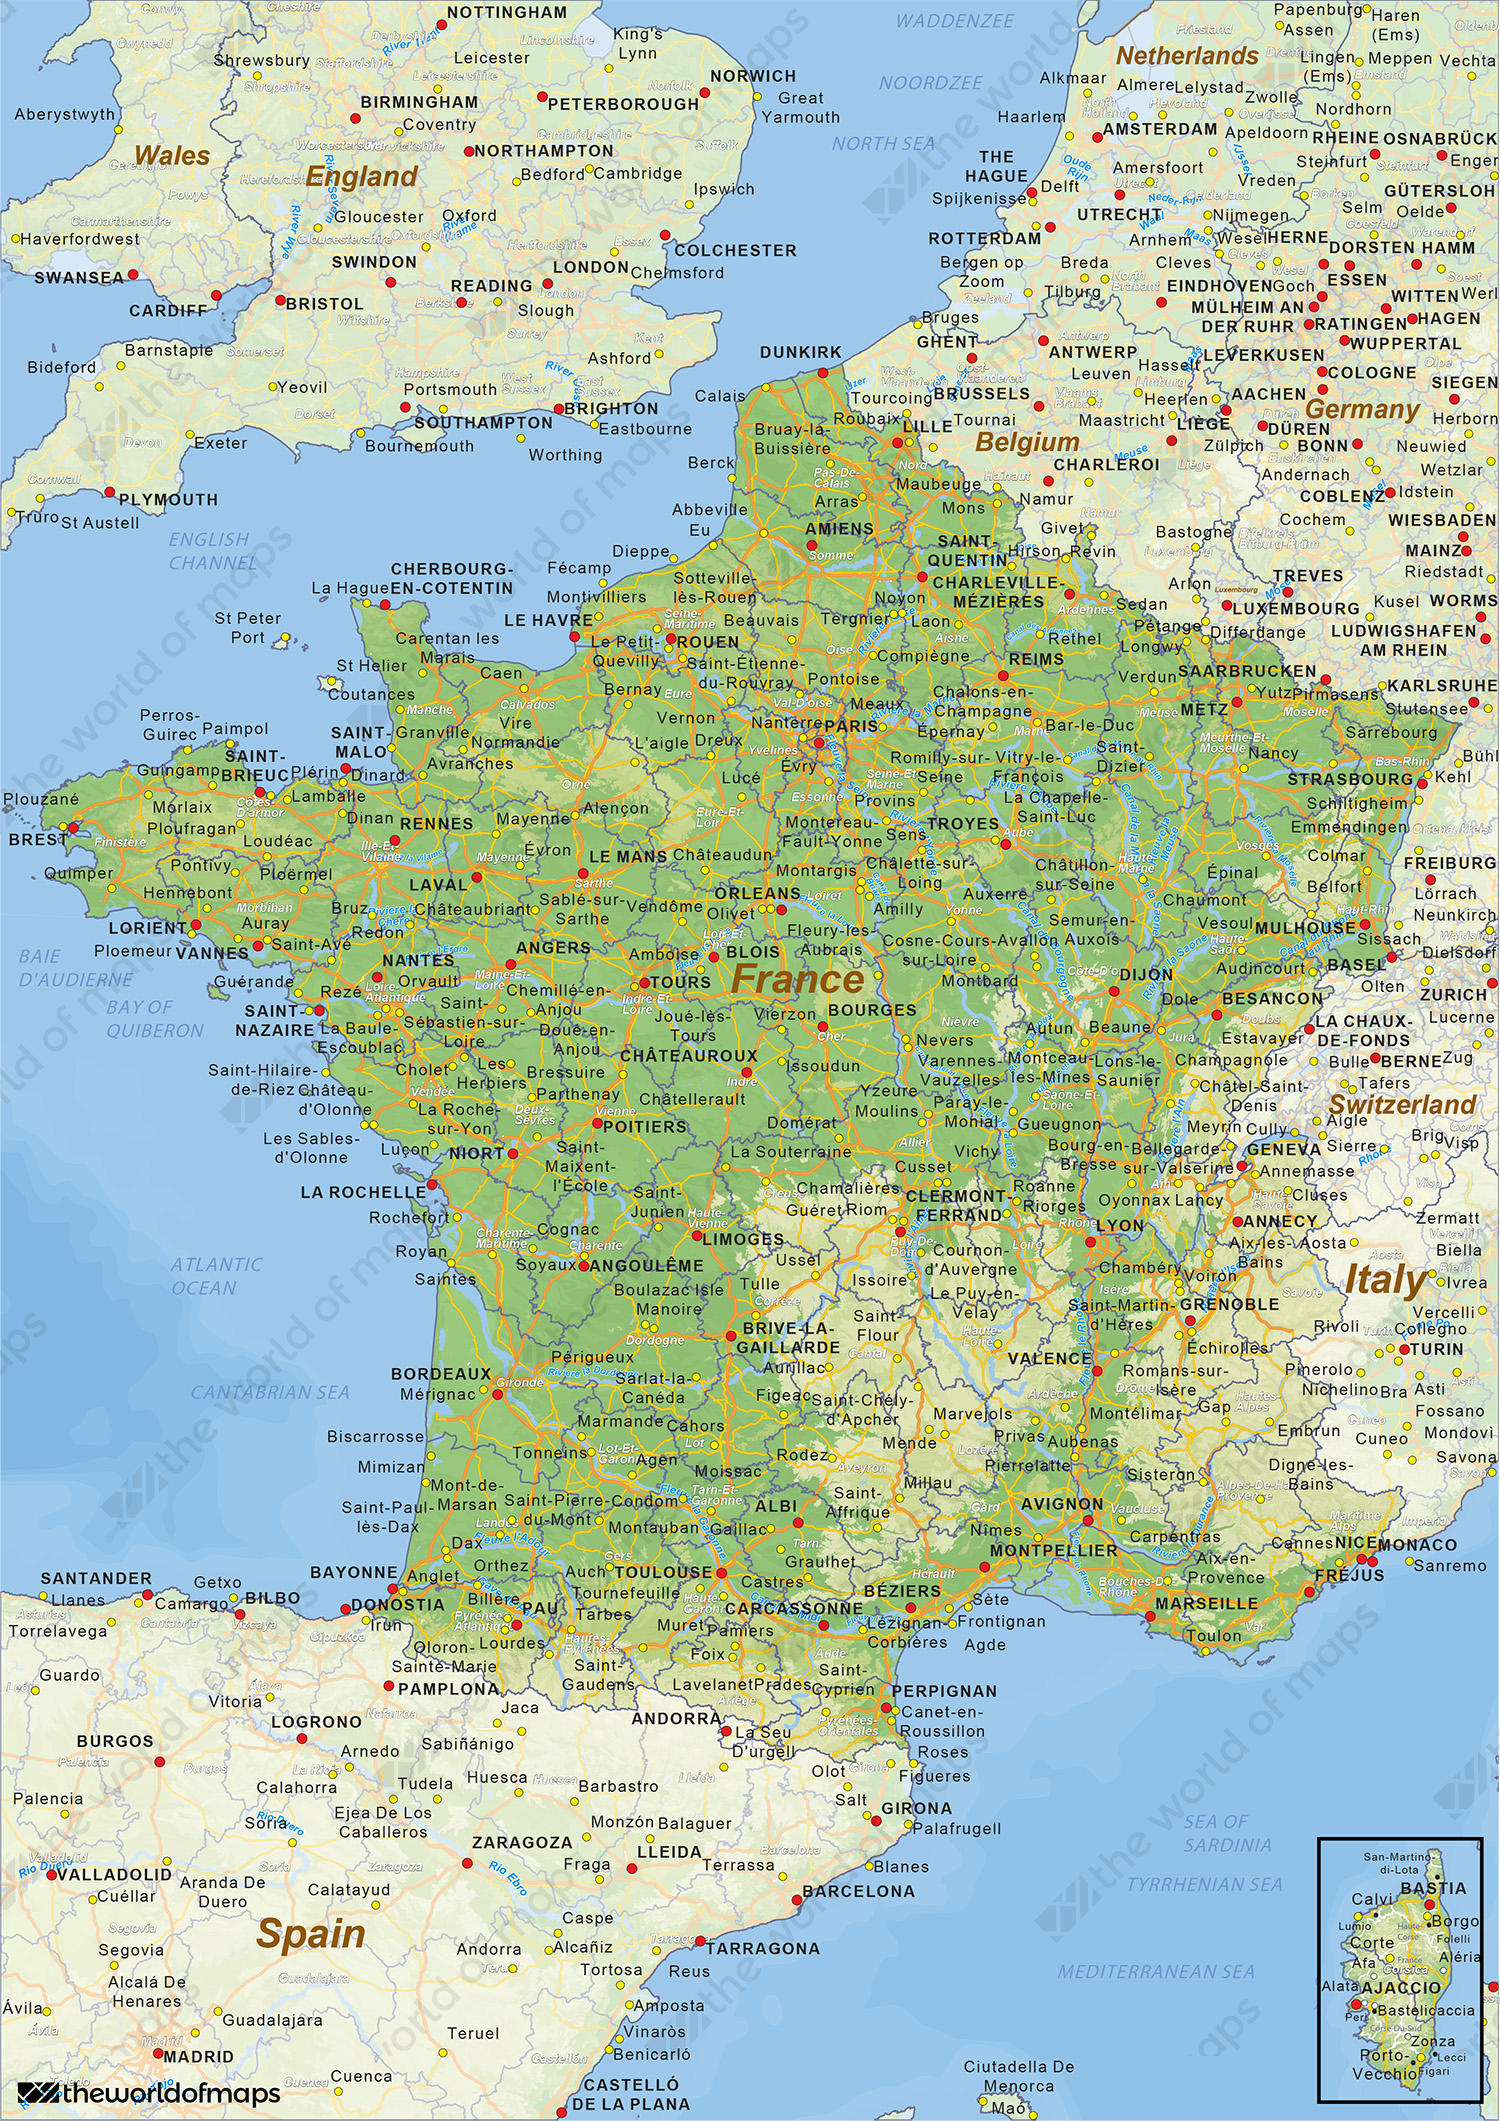 Digital physical map of france 1433 the world of maps digital physical map of france gumiabroncs Choice Image